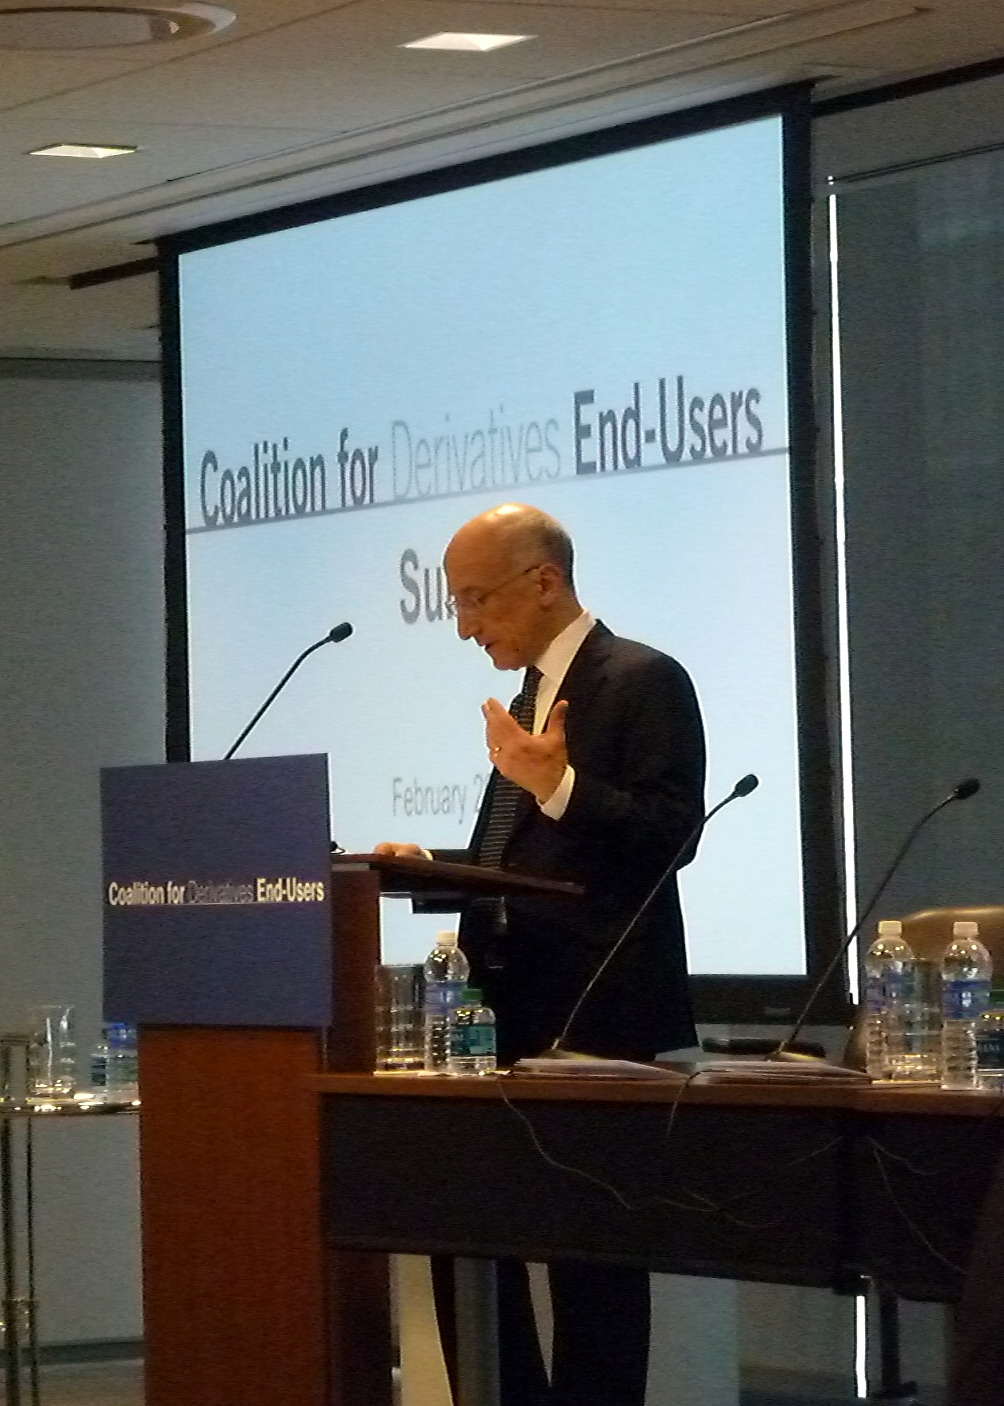 CFTC Chairman Timothy Massad address Coalition for Derivatives End-Users